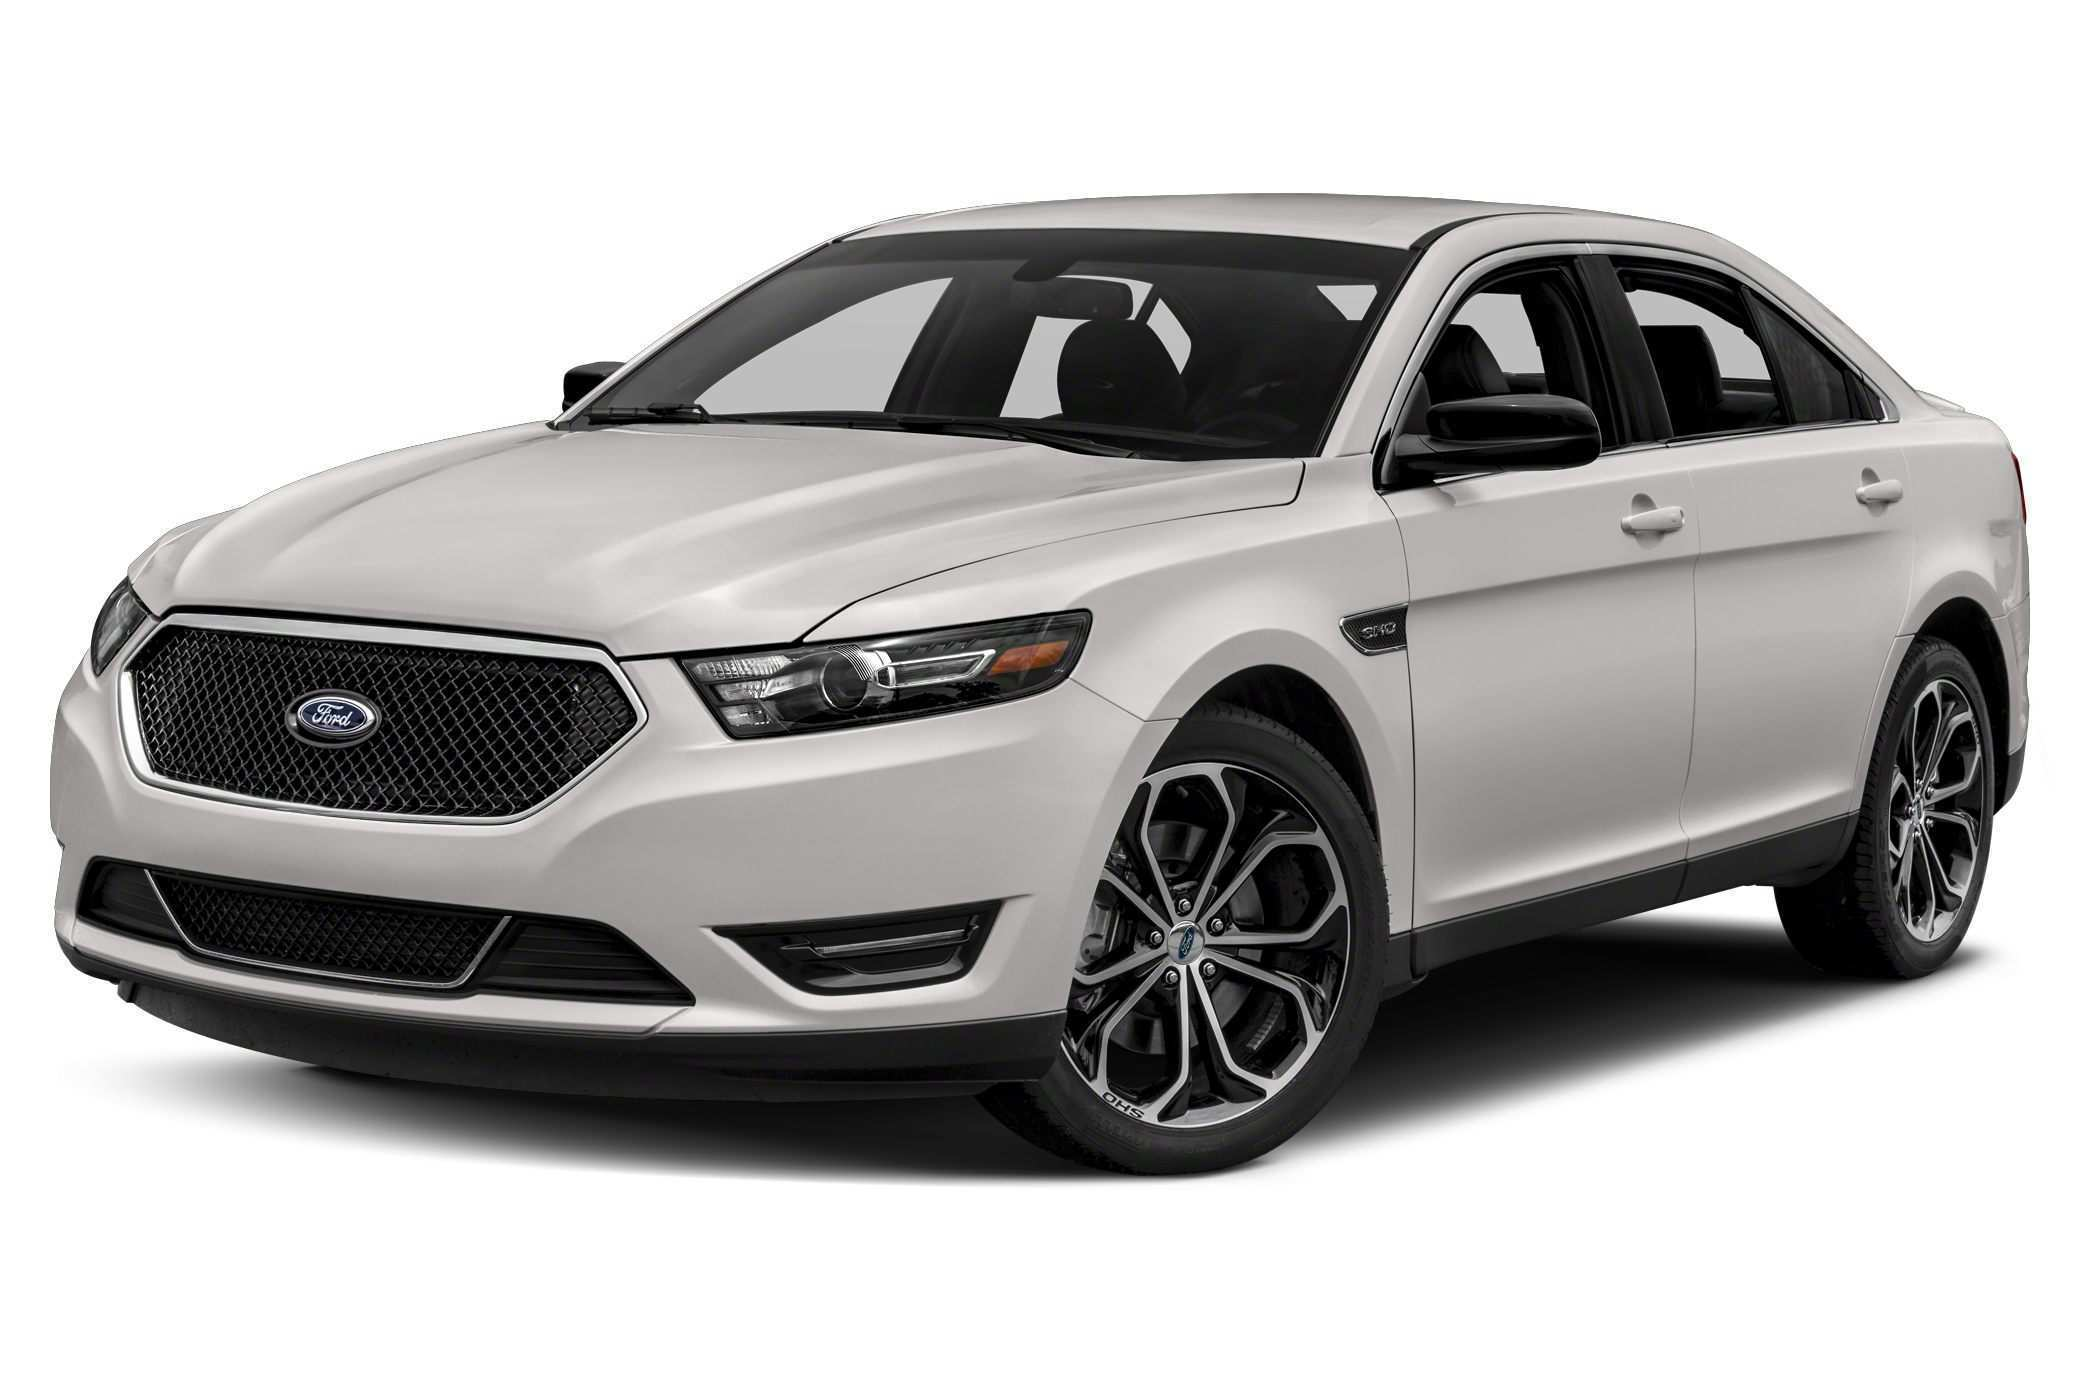 77 All New 2019 Ford Taurus Sho Style